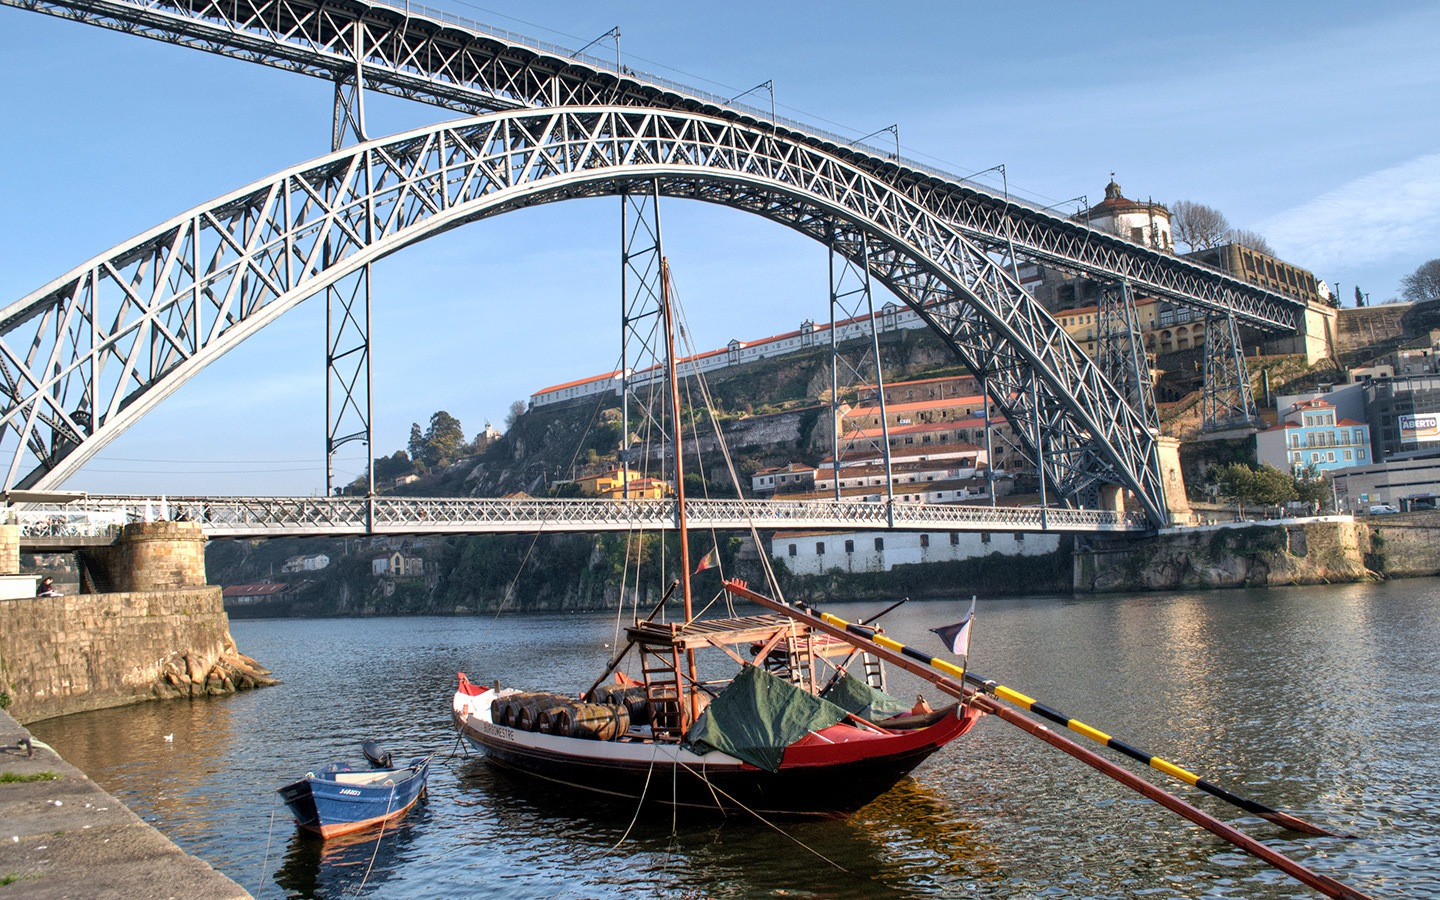 The Dom Luís I bridge